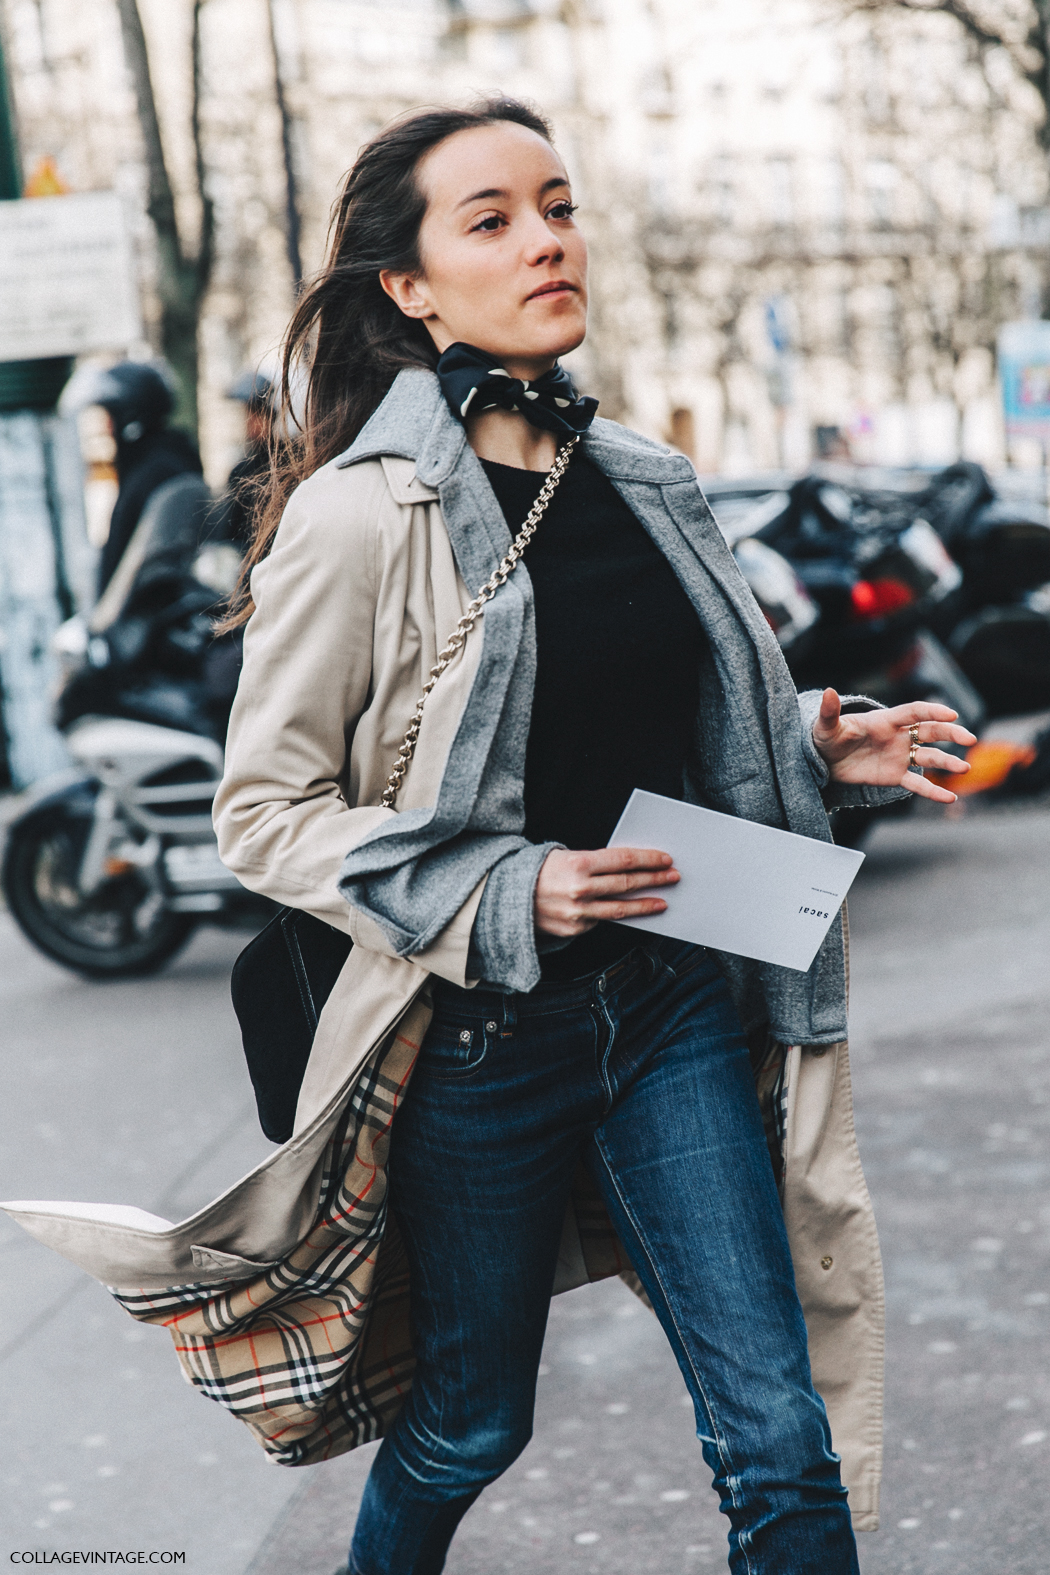 PFW-Paris_Fashion_Week_Fall_2016-Street_Style-Collage_Vintage-Stella_McCartney-Trench_Coat-Dot_Scarf-Bandana-